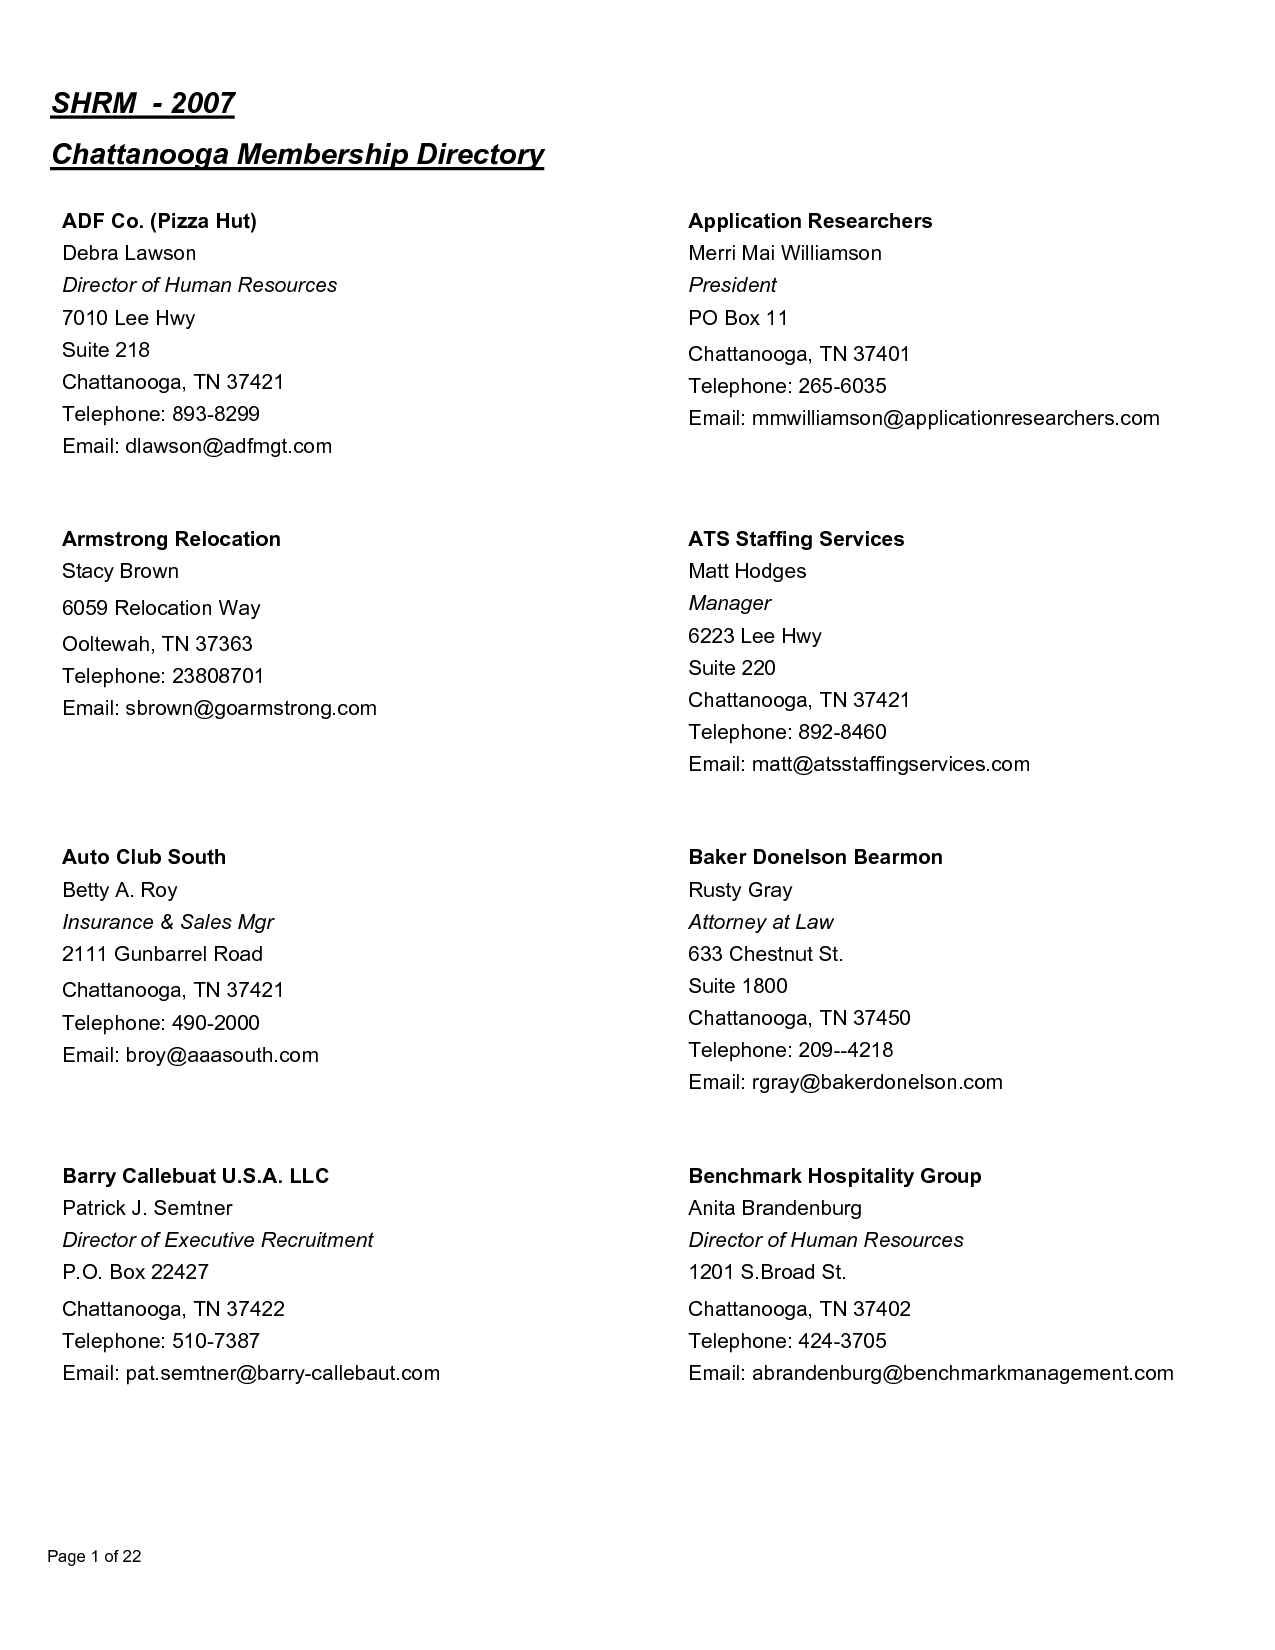 Church Directory Template | Doliquid - Free Printable Church Directory Template